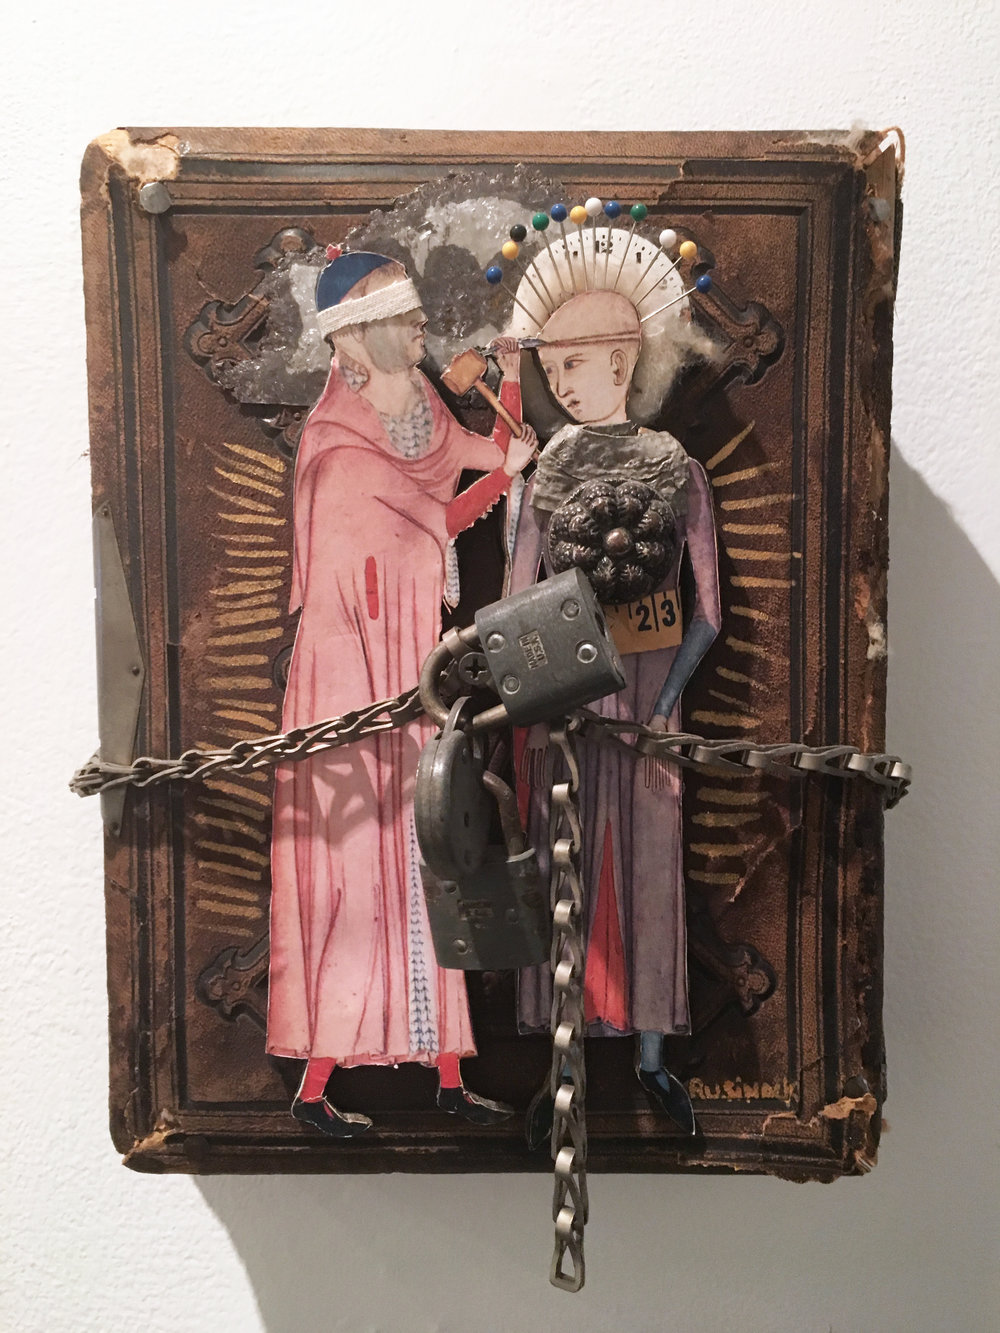 Rusinack_Crowned_Assemblage_11X9X4_2018_425.jpg